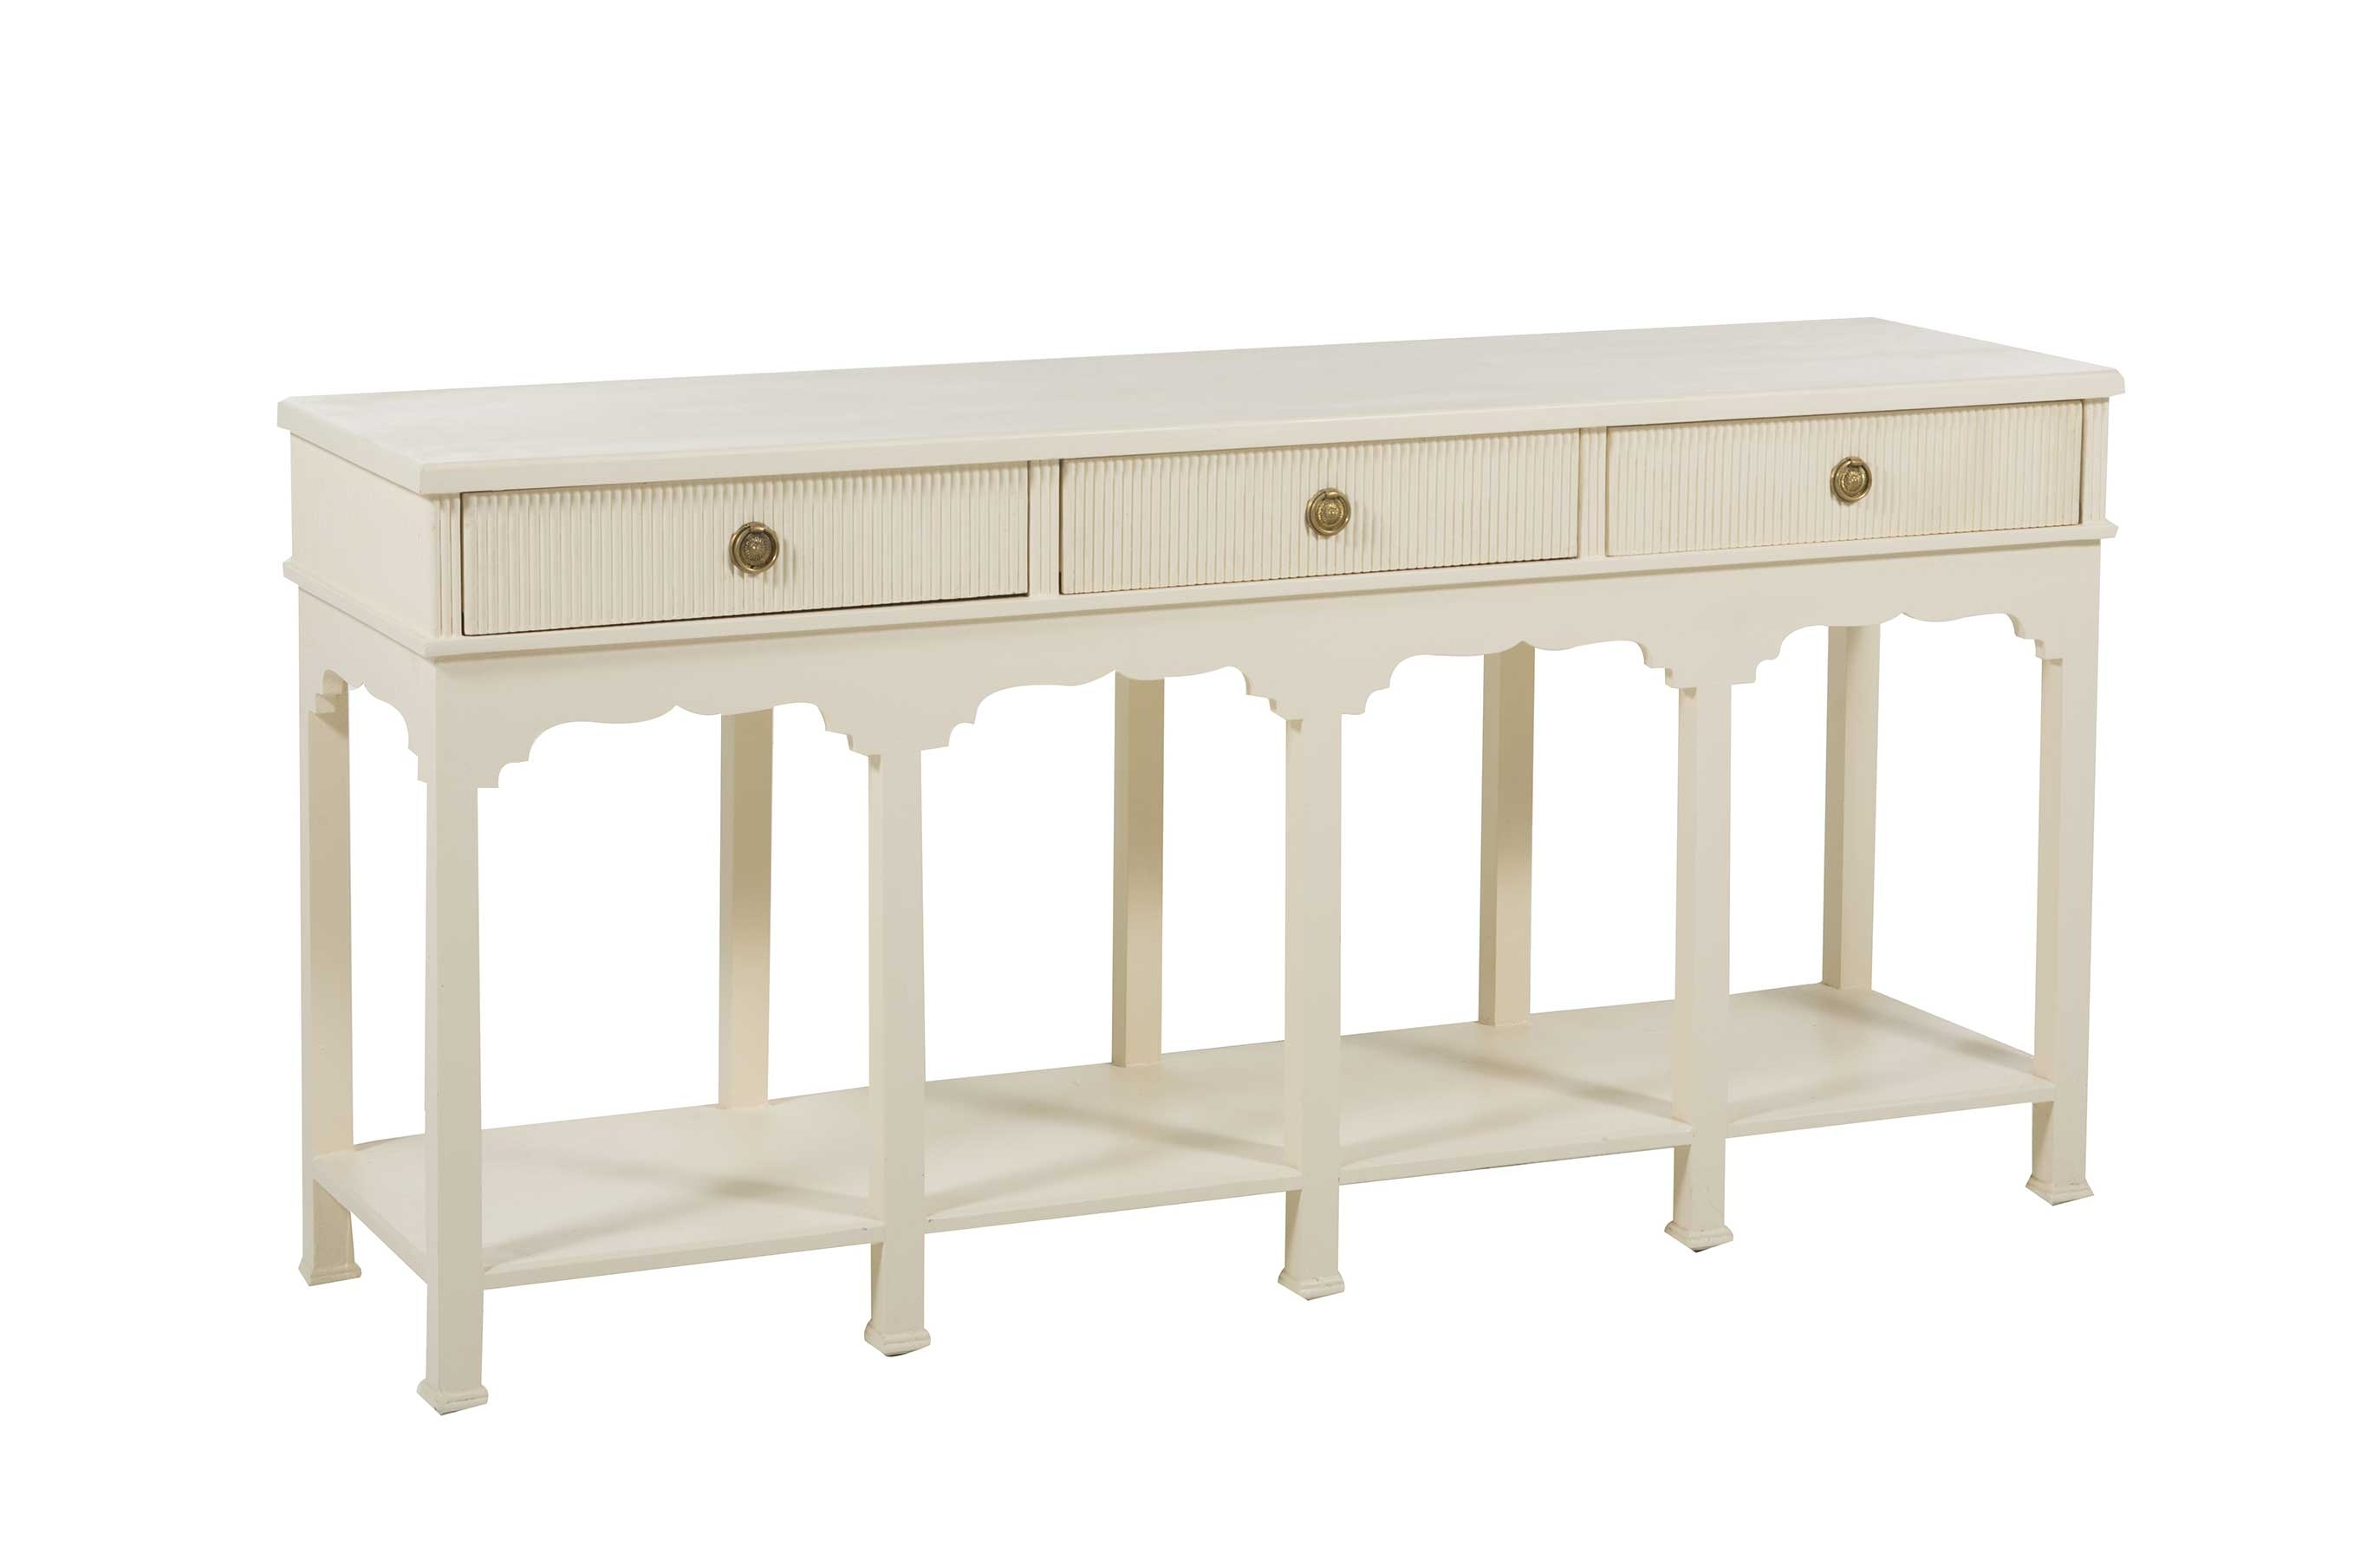 Shea Sideboard - Gabby intended for Open Shelf Brass 4-Drawer Sideboards (Image 17 of 30)